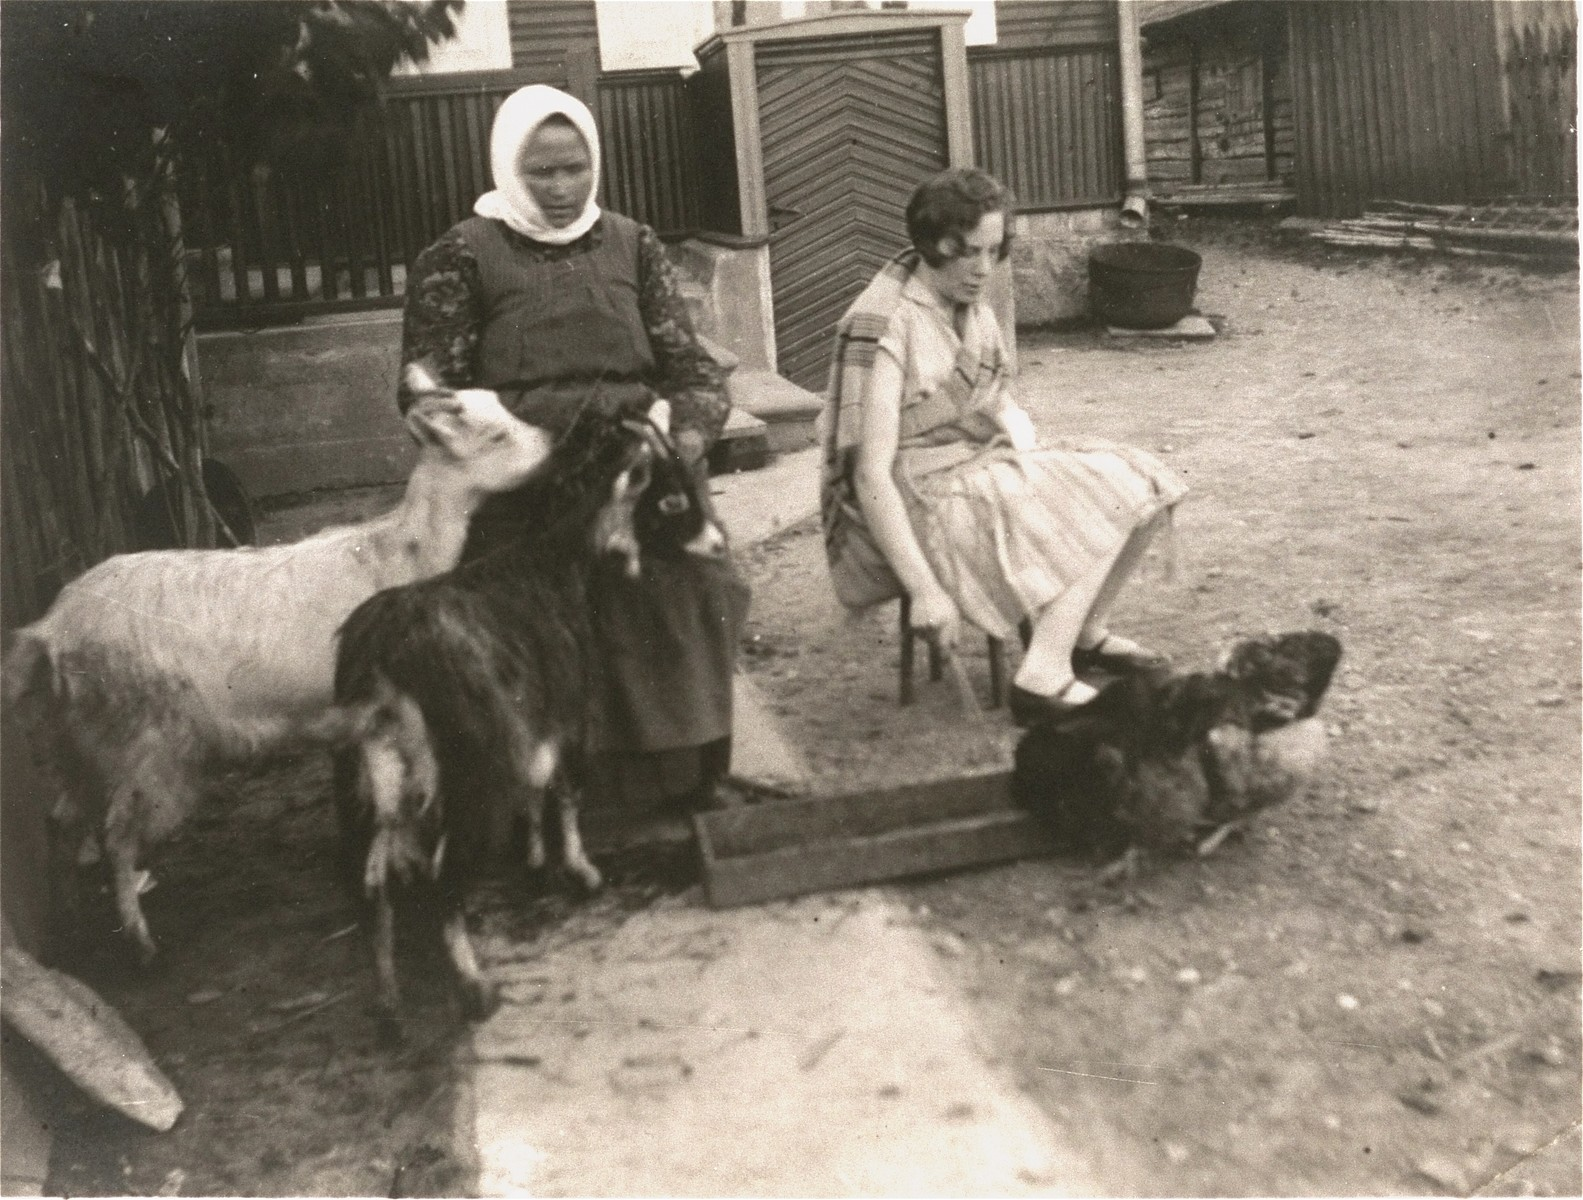 A young Jewish woman feeds chickens in a courtyard in Siauliai, Lithuania.  Pictured on the right is Sonia (Lowenstein) Schereschevsky, the donor's great aunt, just before she left Siauliai to join her husband, Nathan, in South Africa.  An unidentified women on the left feeds two goats.